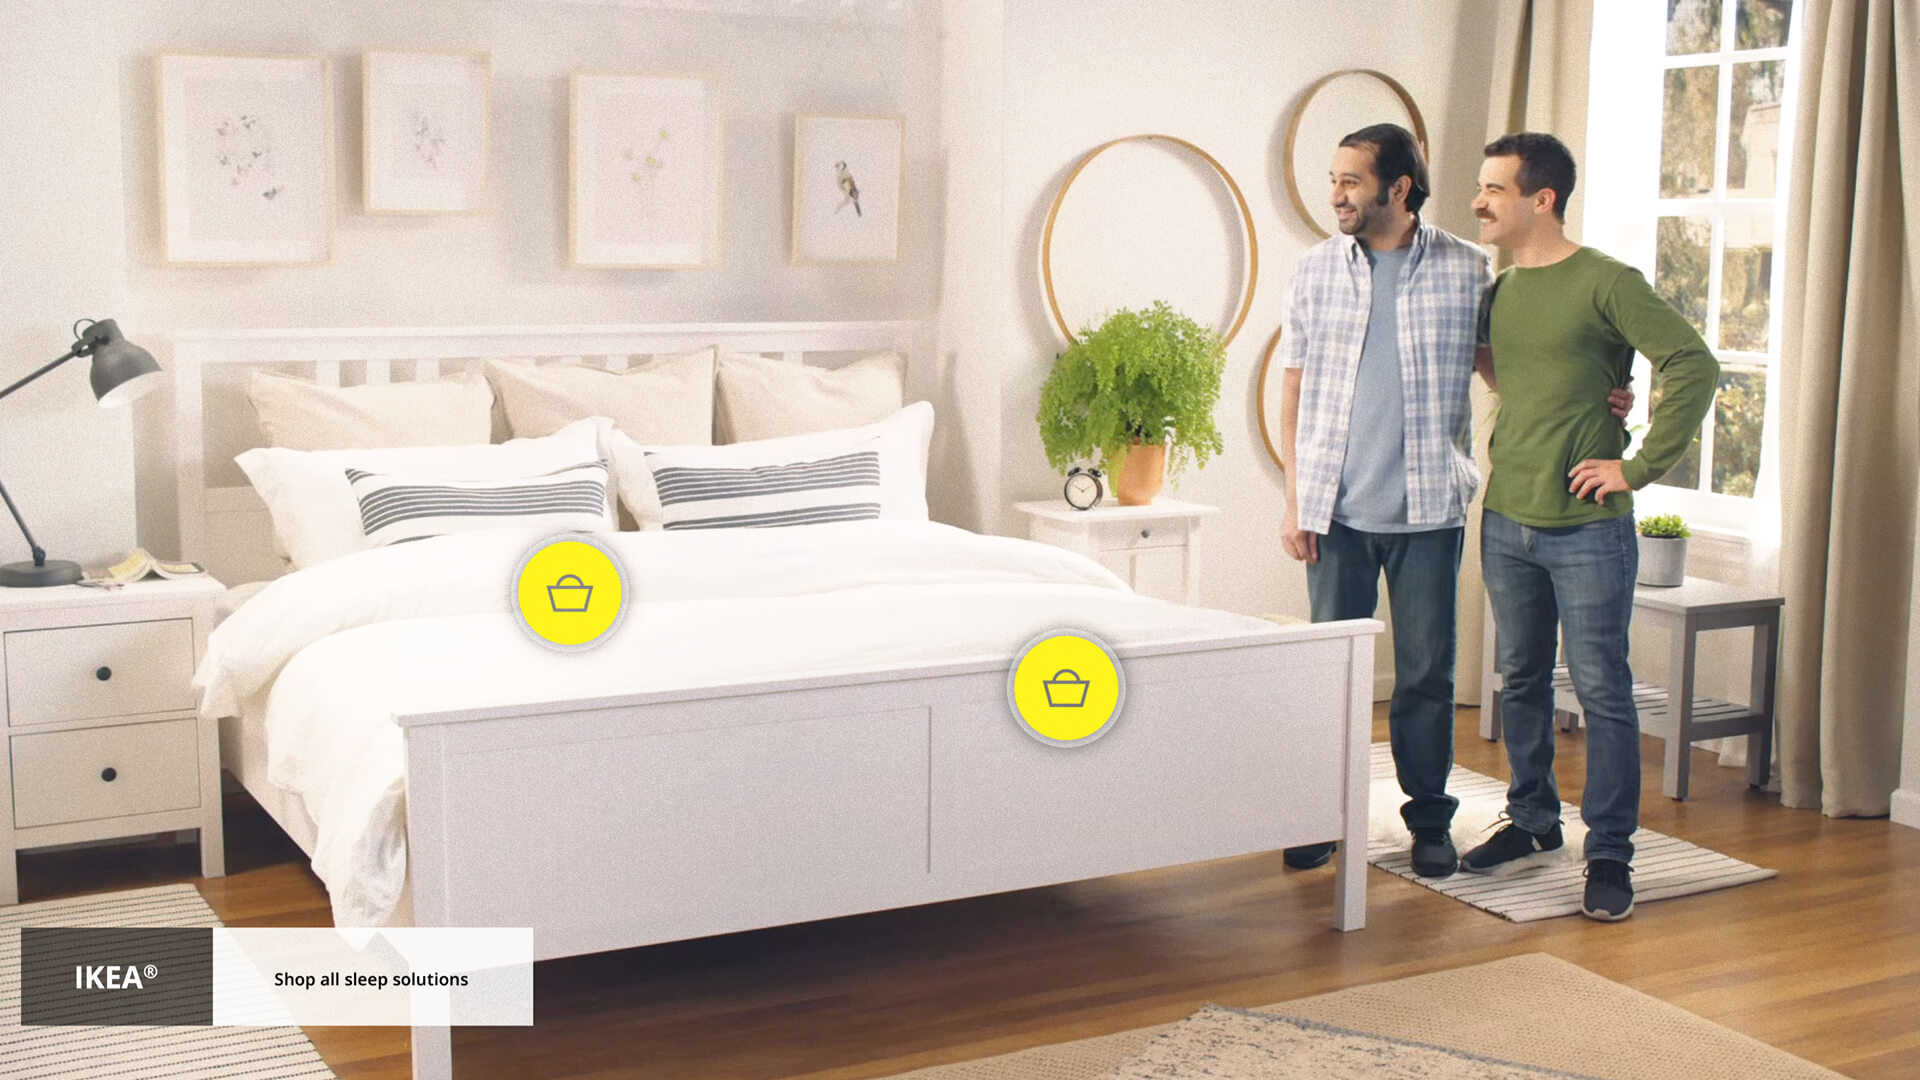 A still from a shoppable video from the furniture brand Ikea. Two males stand next to a bed. On the bed are two clickable hotspots with shopping bag icons on it.